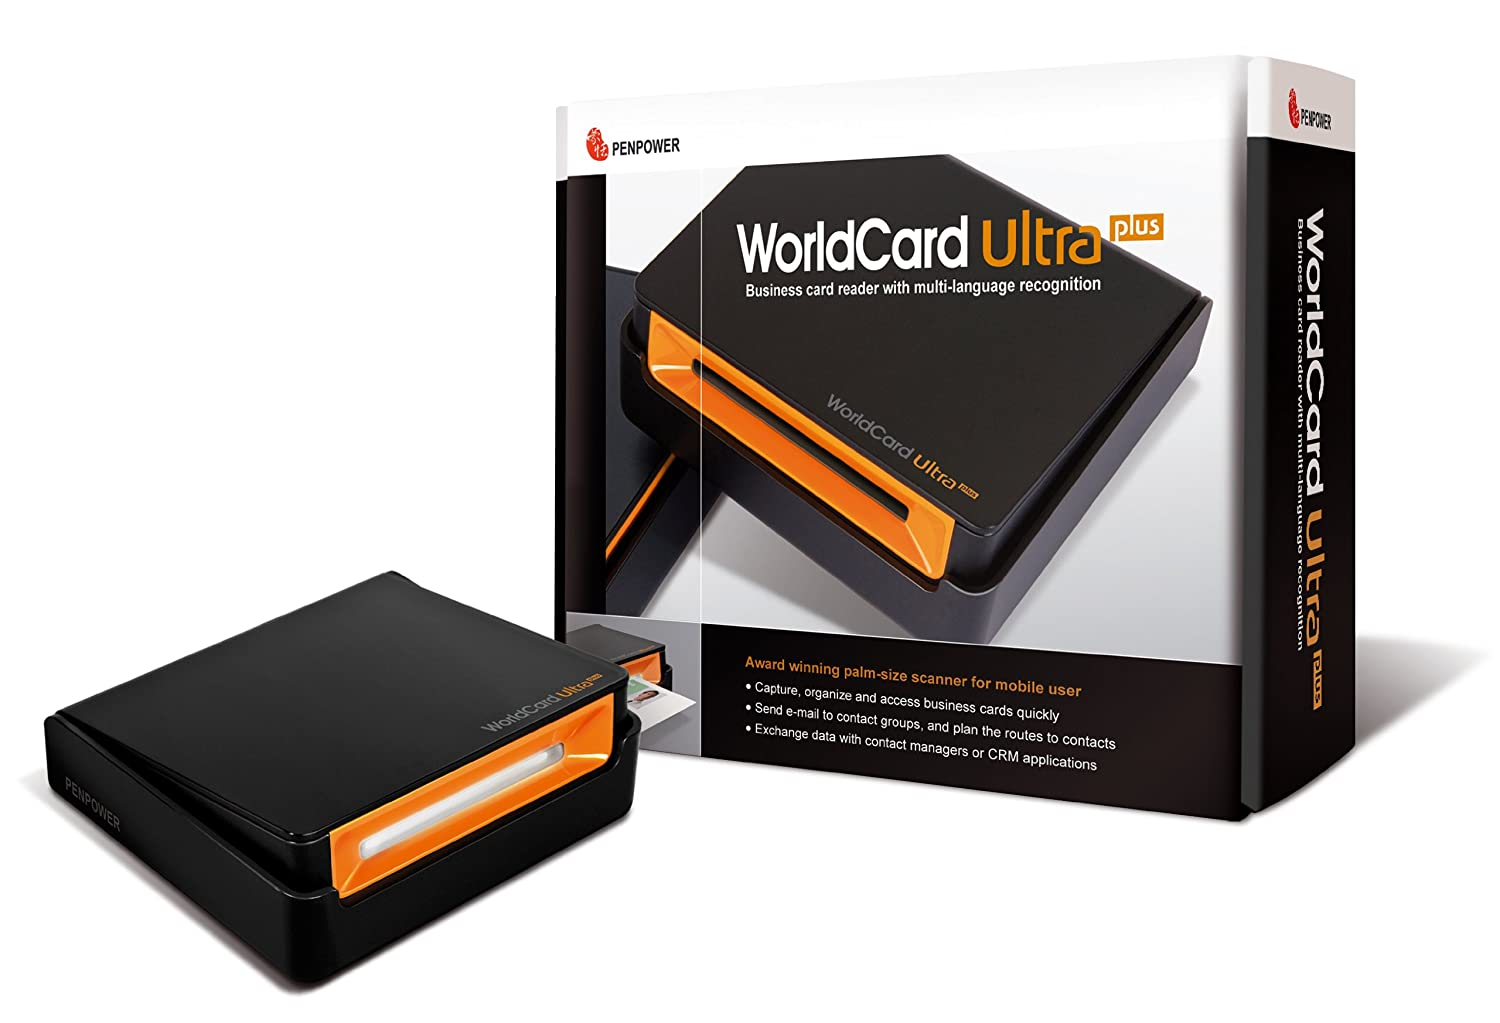 Amazon.com: Penpower Portable Color Business Card Scanner WorldCard ...